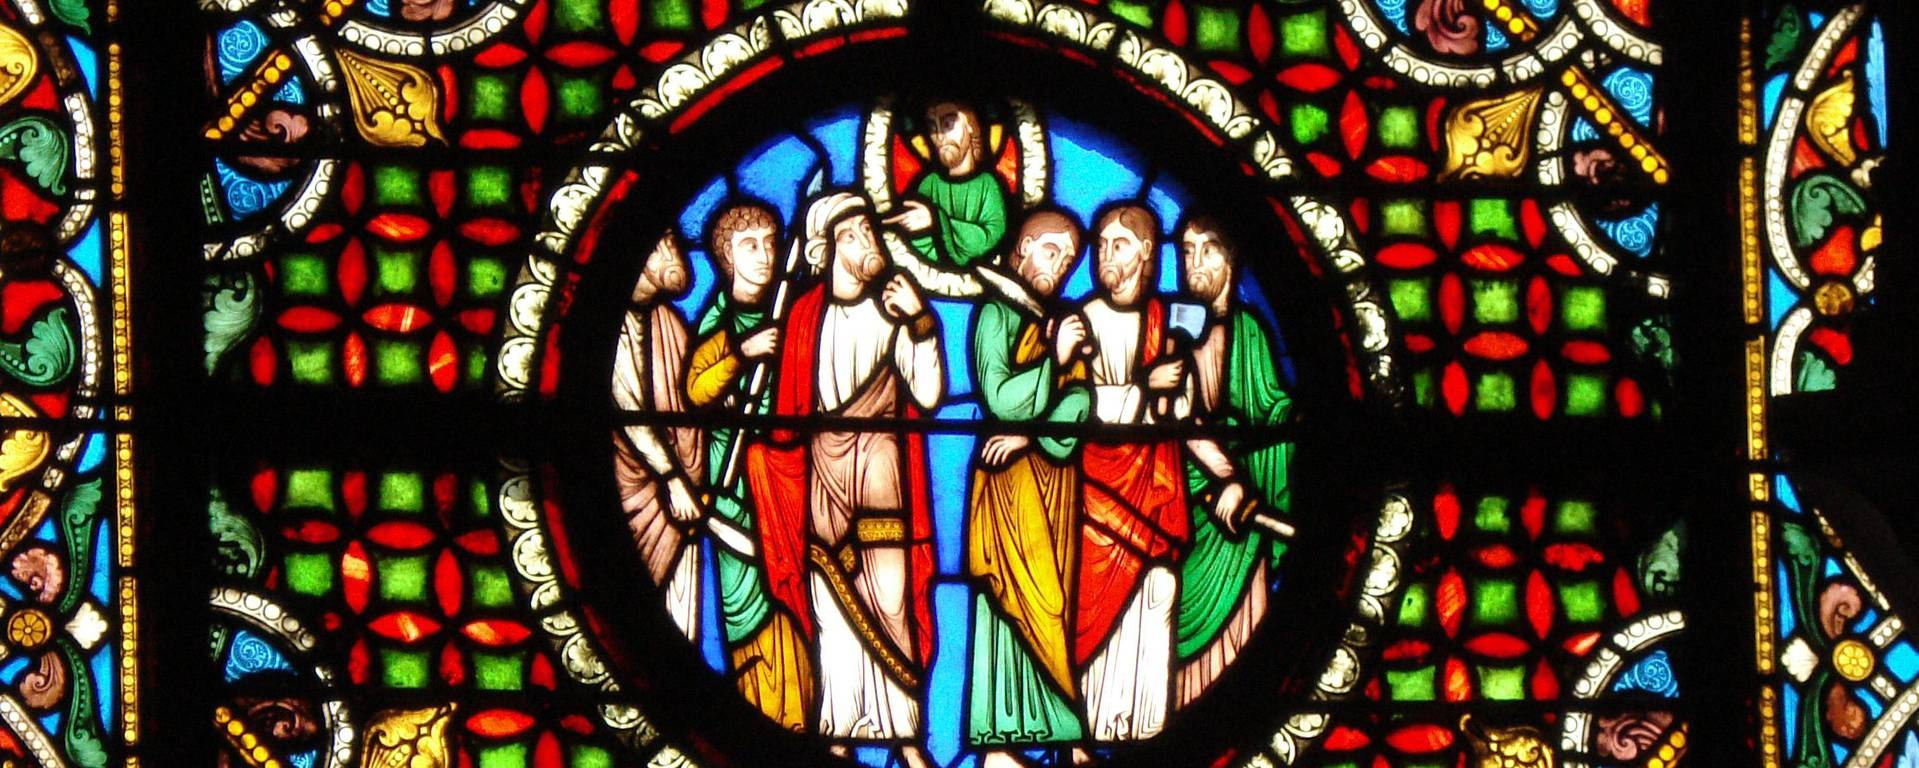 stained glass window of the basilica - © Office de Tourisme de Plaine Commune Grand Paris